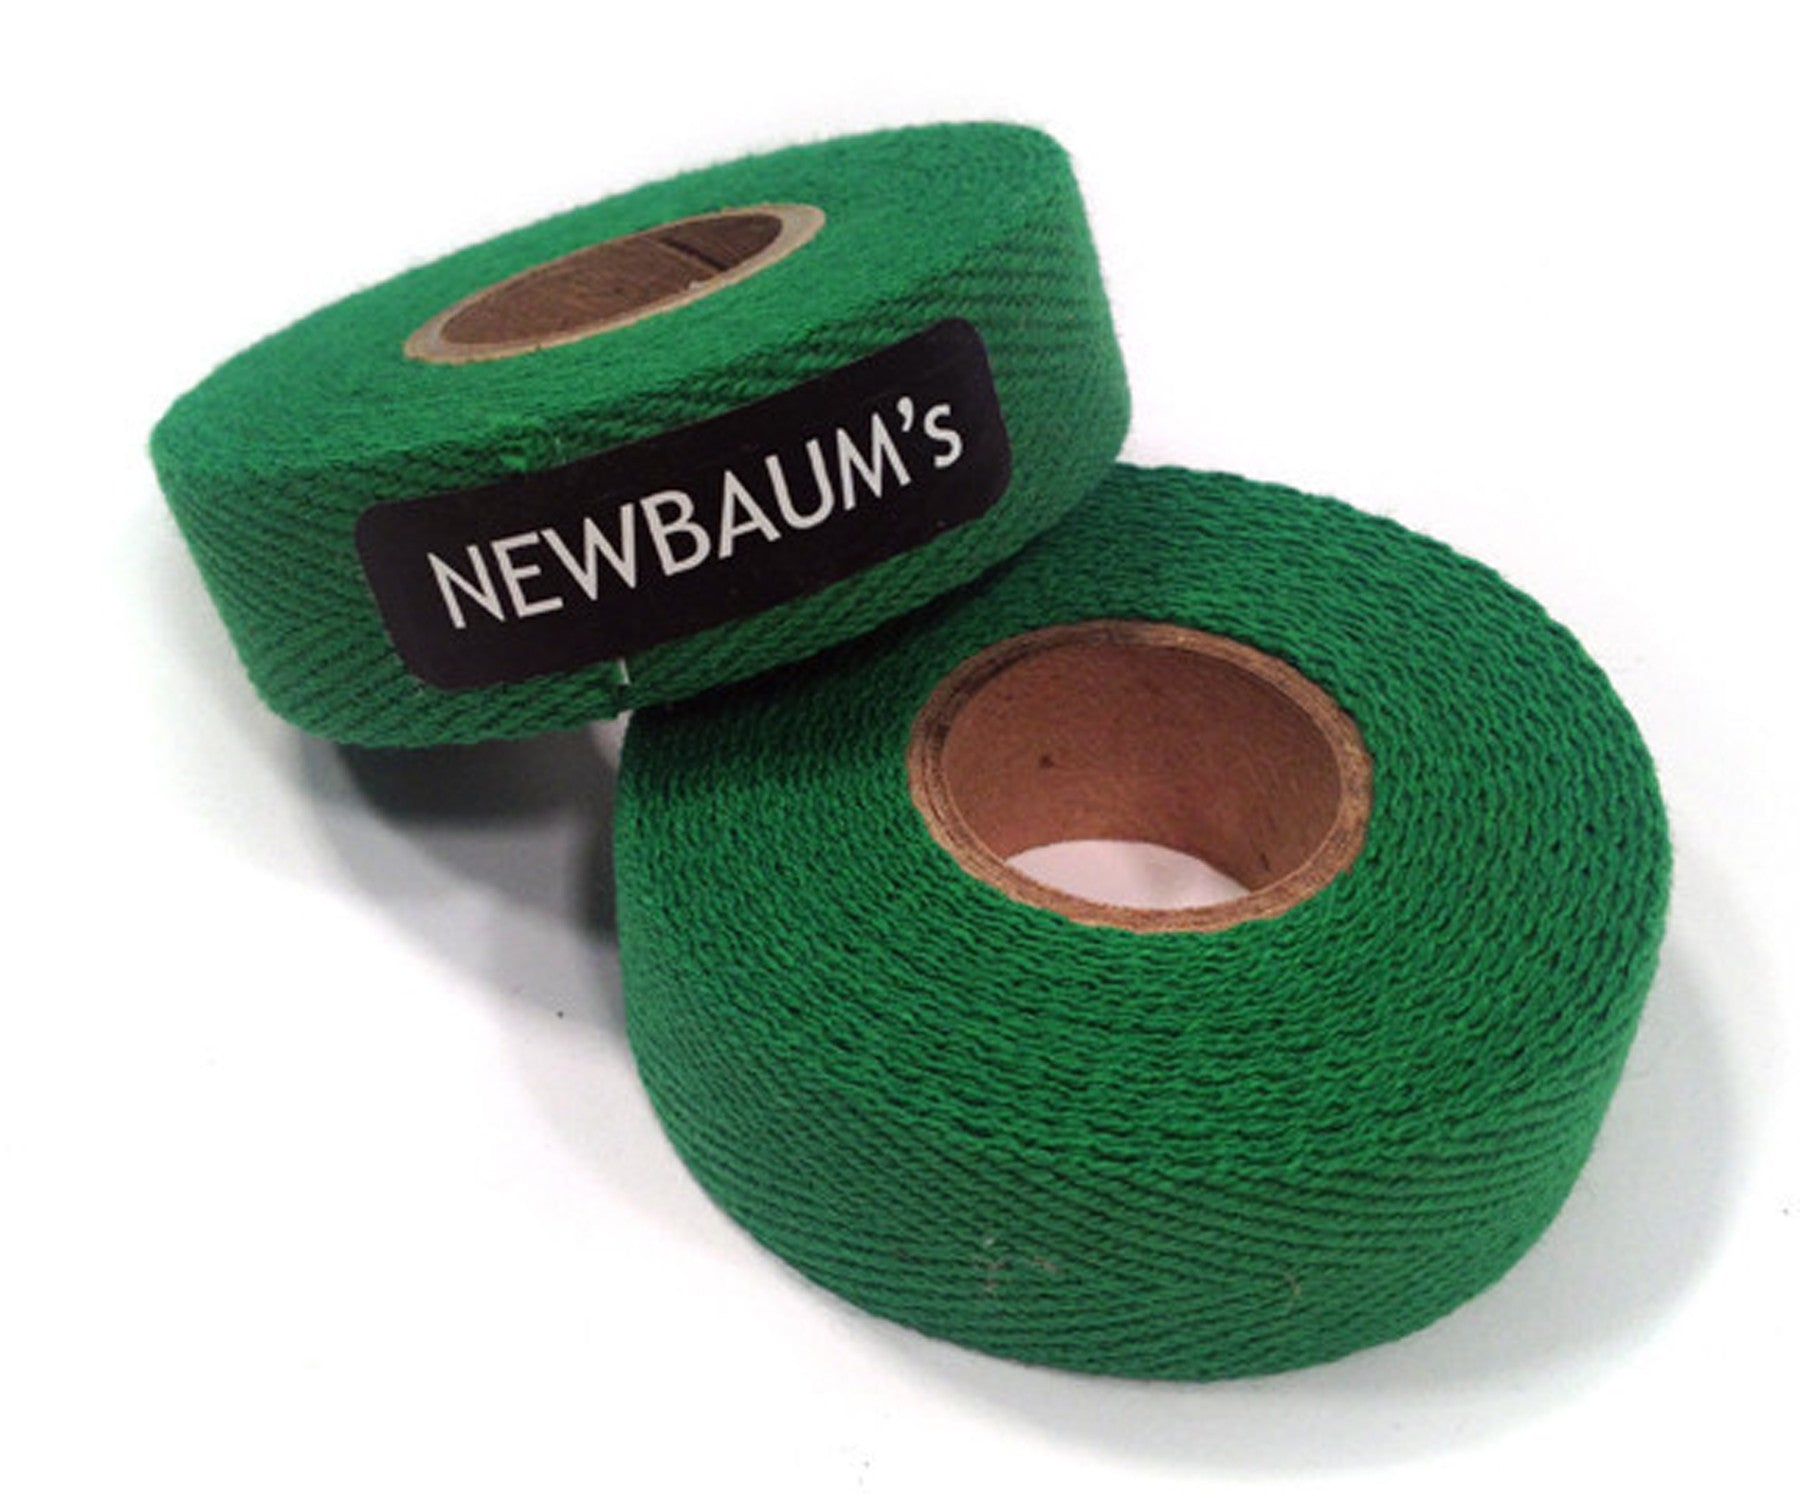 Newbaum's cloth handlebar tape - Retrogression